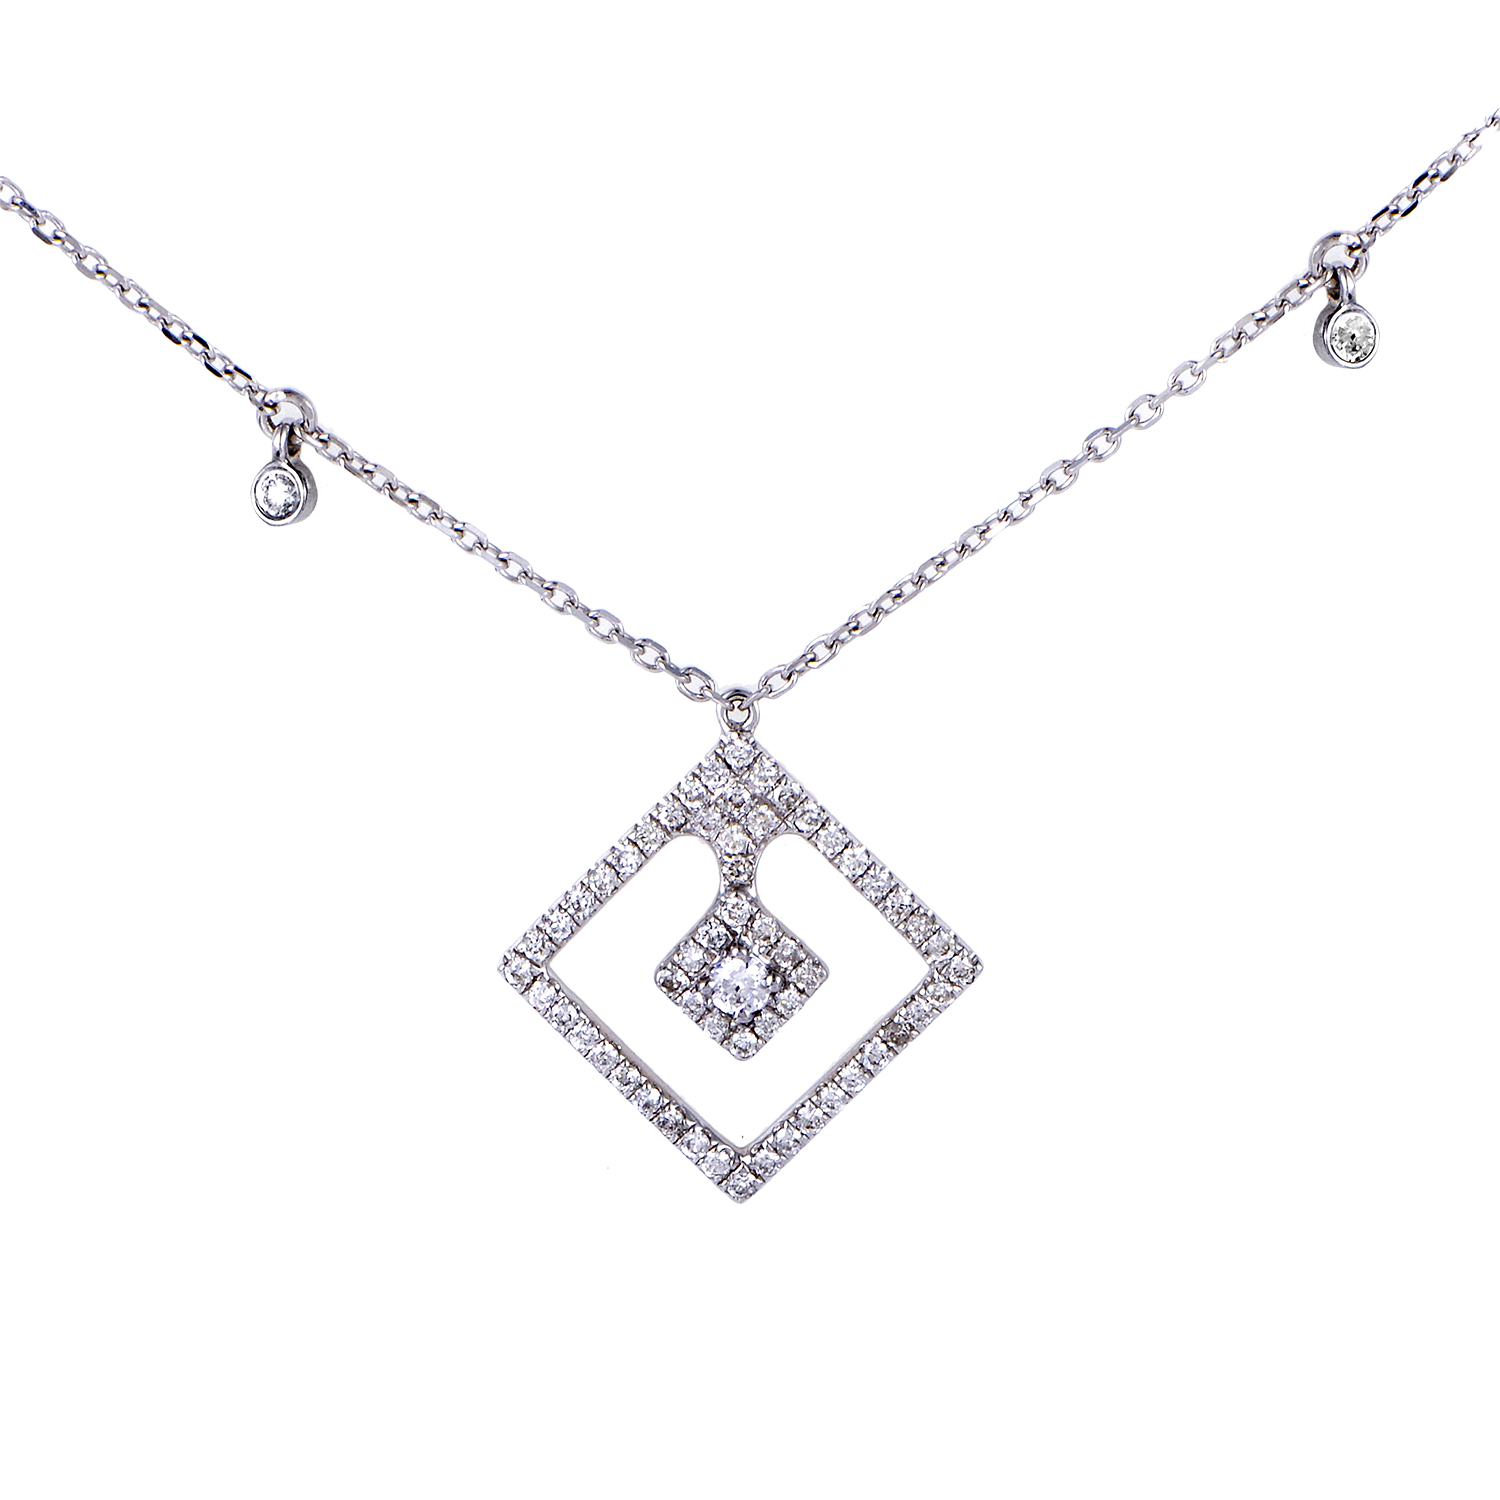 Women's 18K White Gold Diamond Pave Pendant Necklace KE88951RBZ